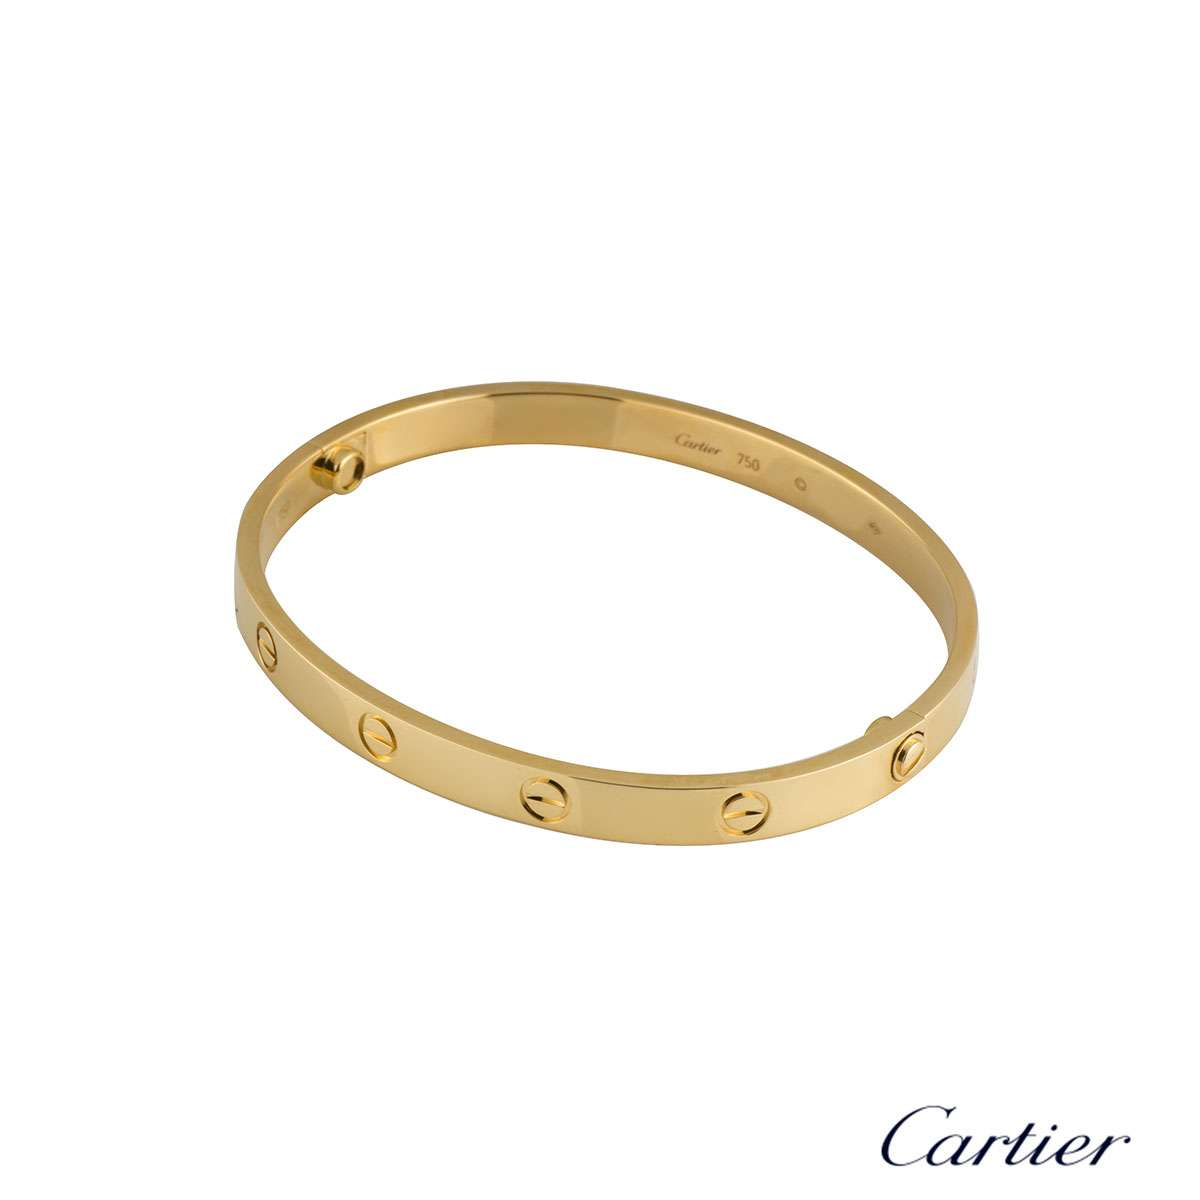 Cartier Yellow Gold Plain Love Bracelet Size 20 B6035520